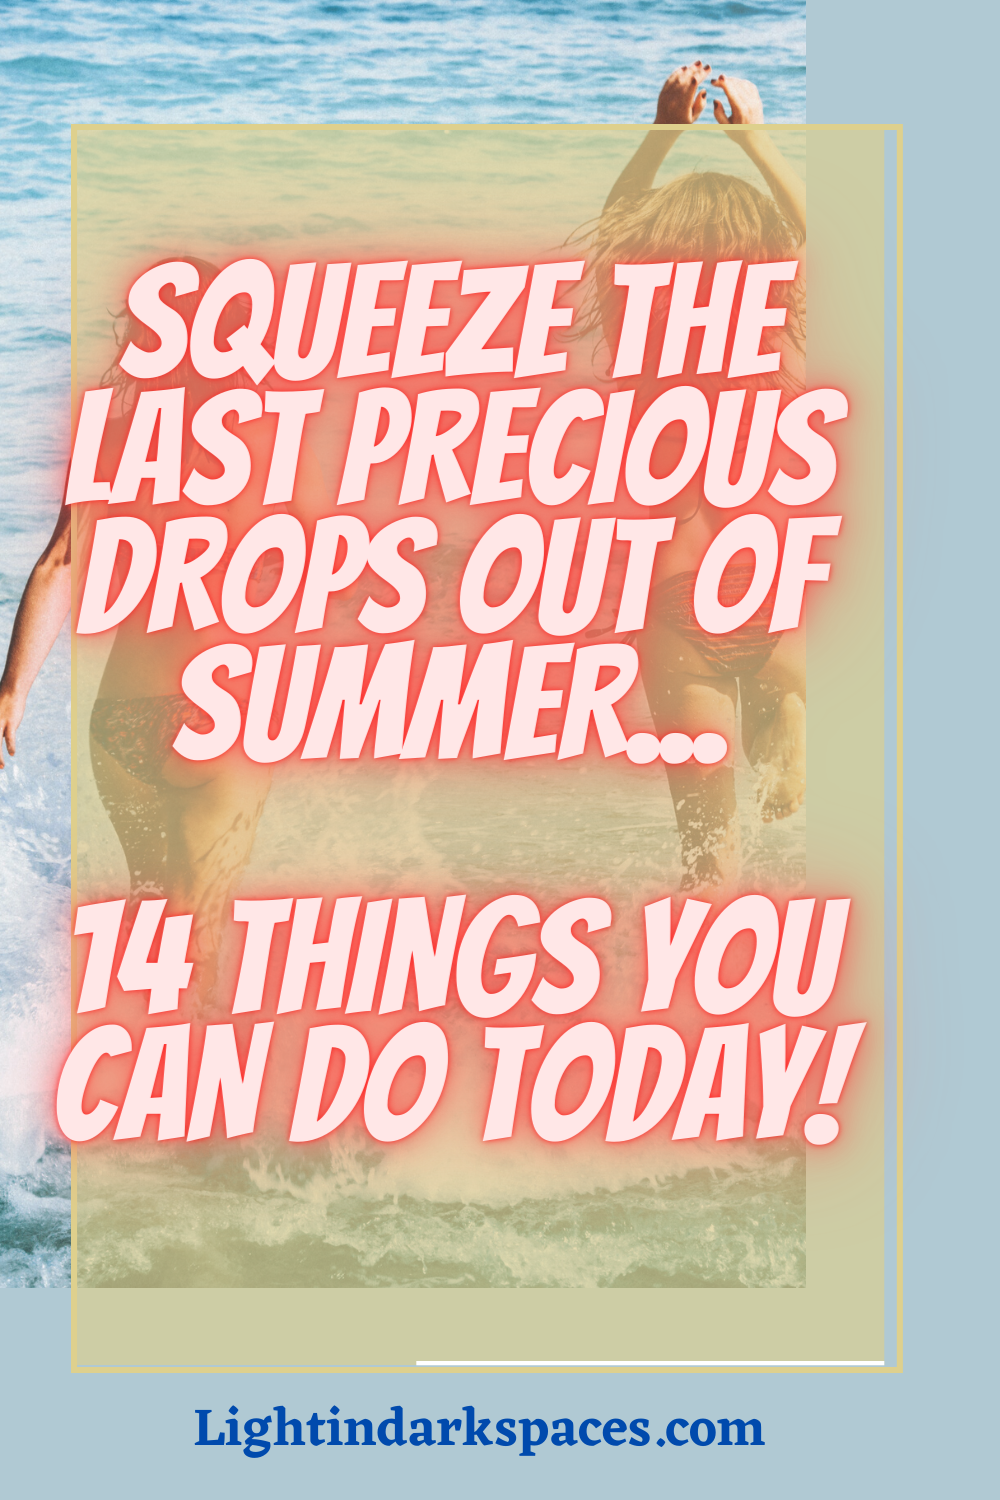 2 Women In bikinis running into the ocean. Squeeze the last precious drops out of summer. 14 things you can do today!